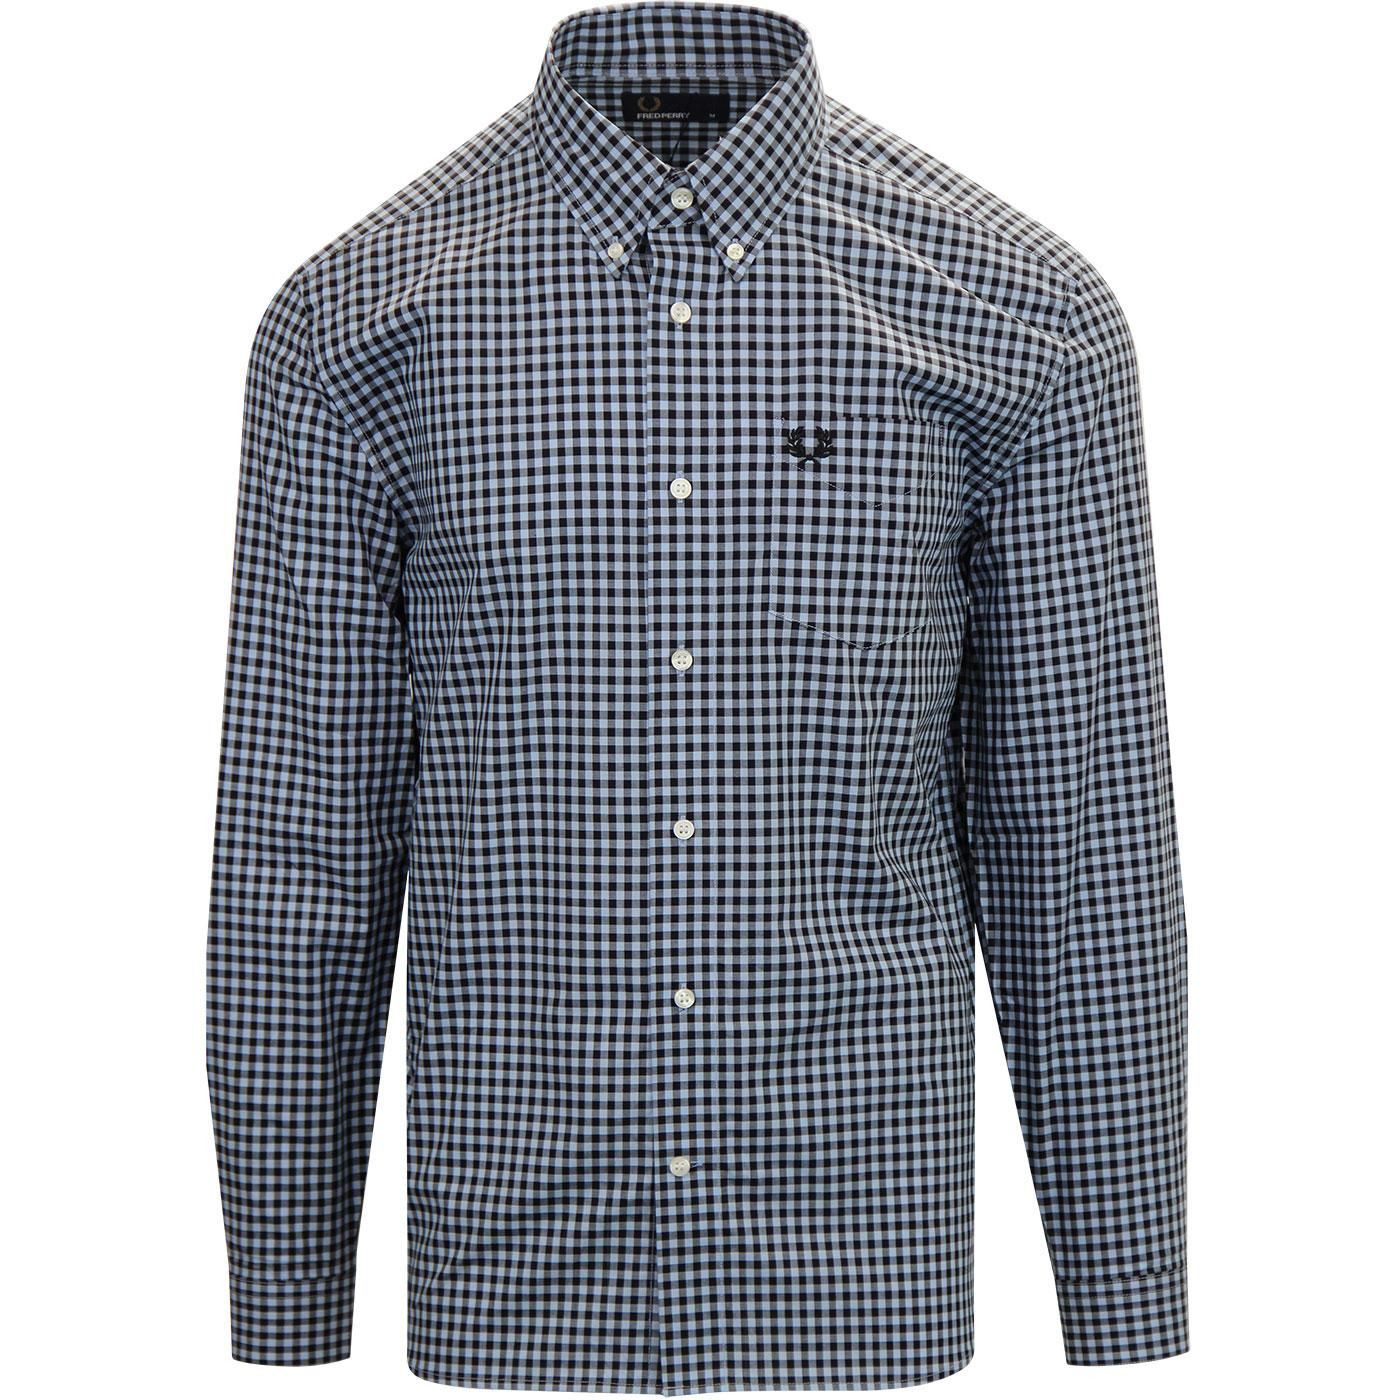 FRED PERRY Retro Mod Two Colour Gingham Shirt